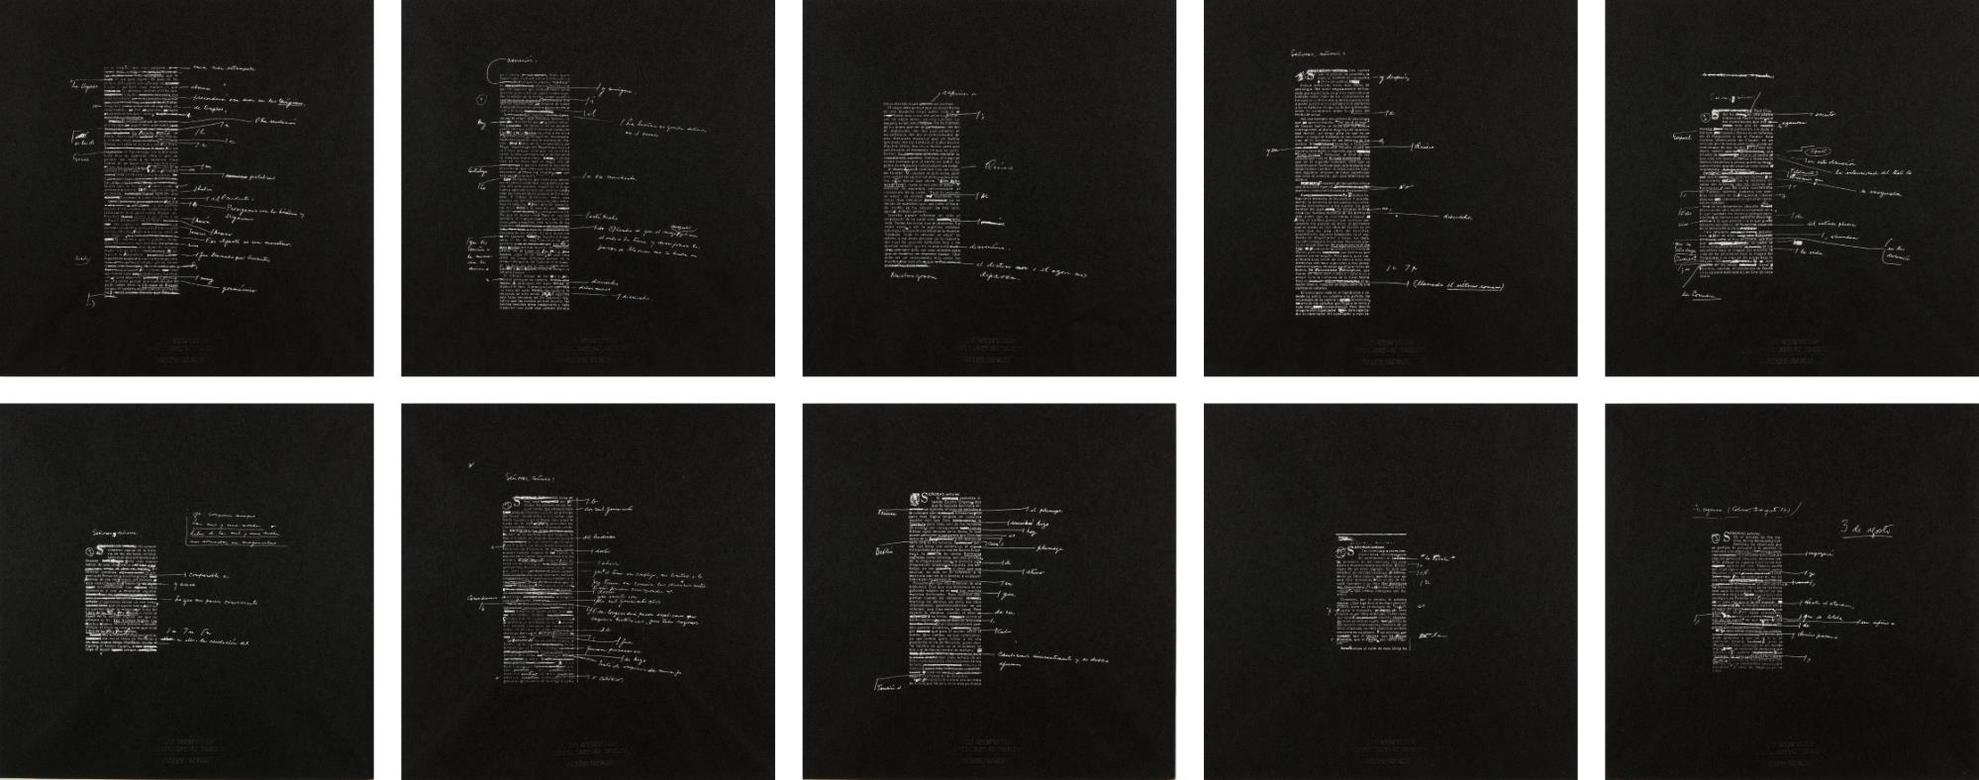 Joseph Kosuth-10 Unnumbered Corrections (7 Nights)-1991